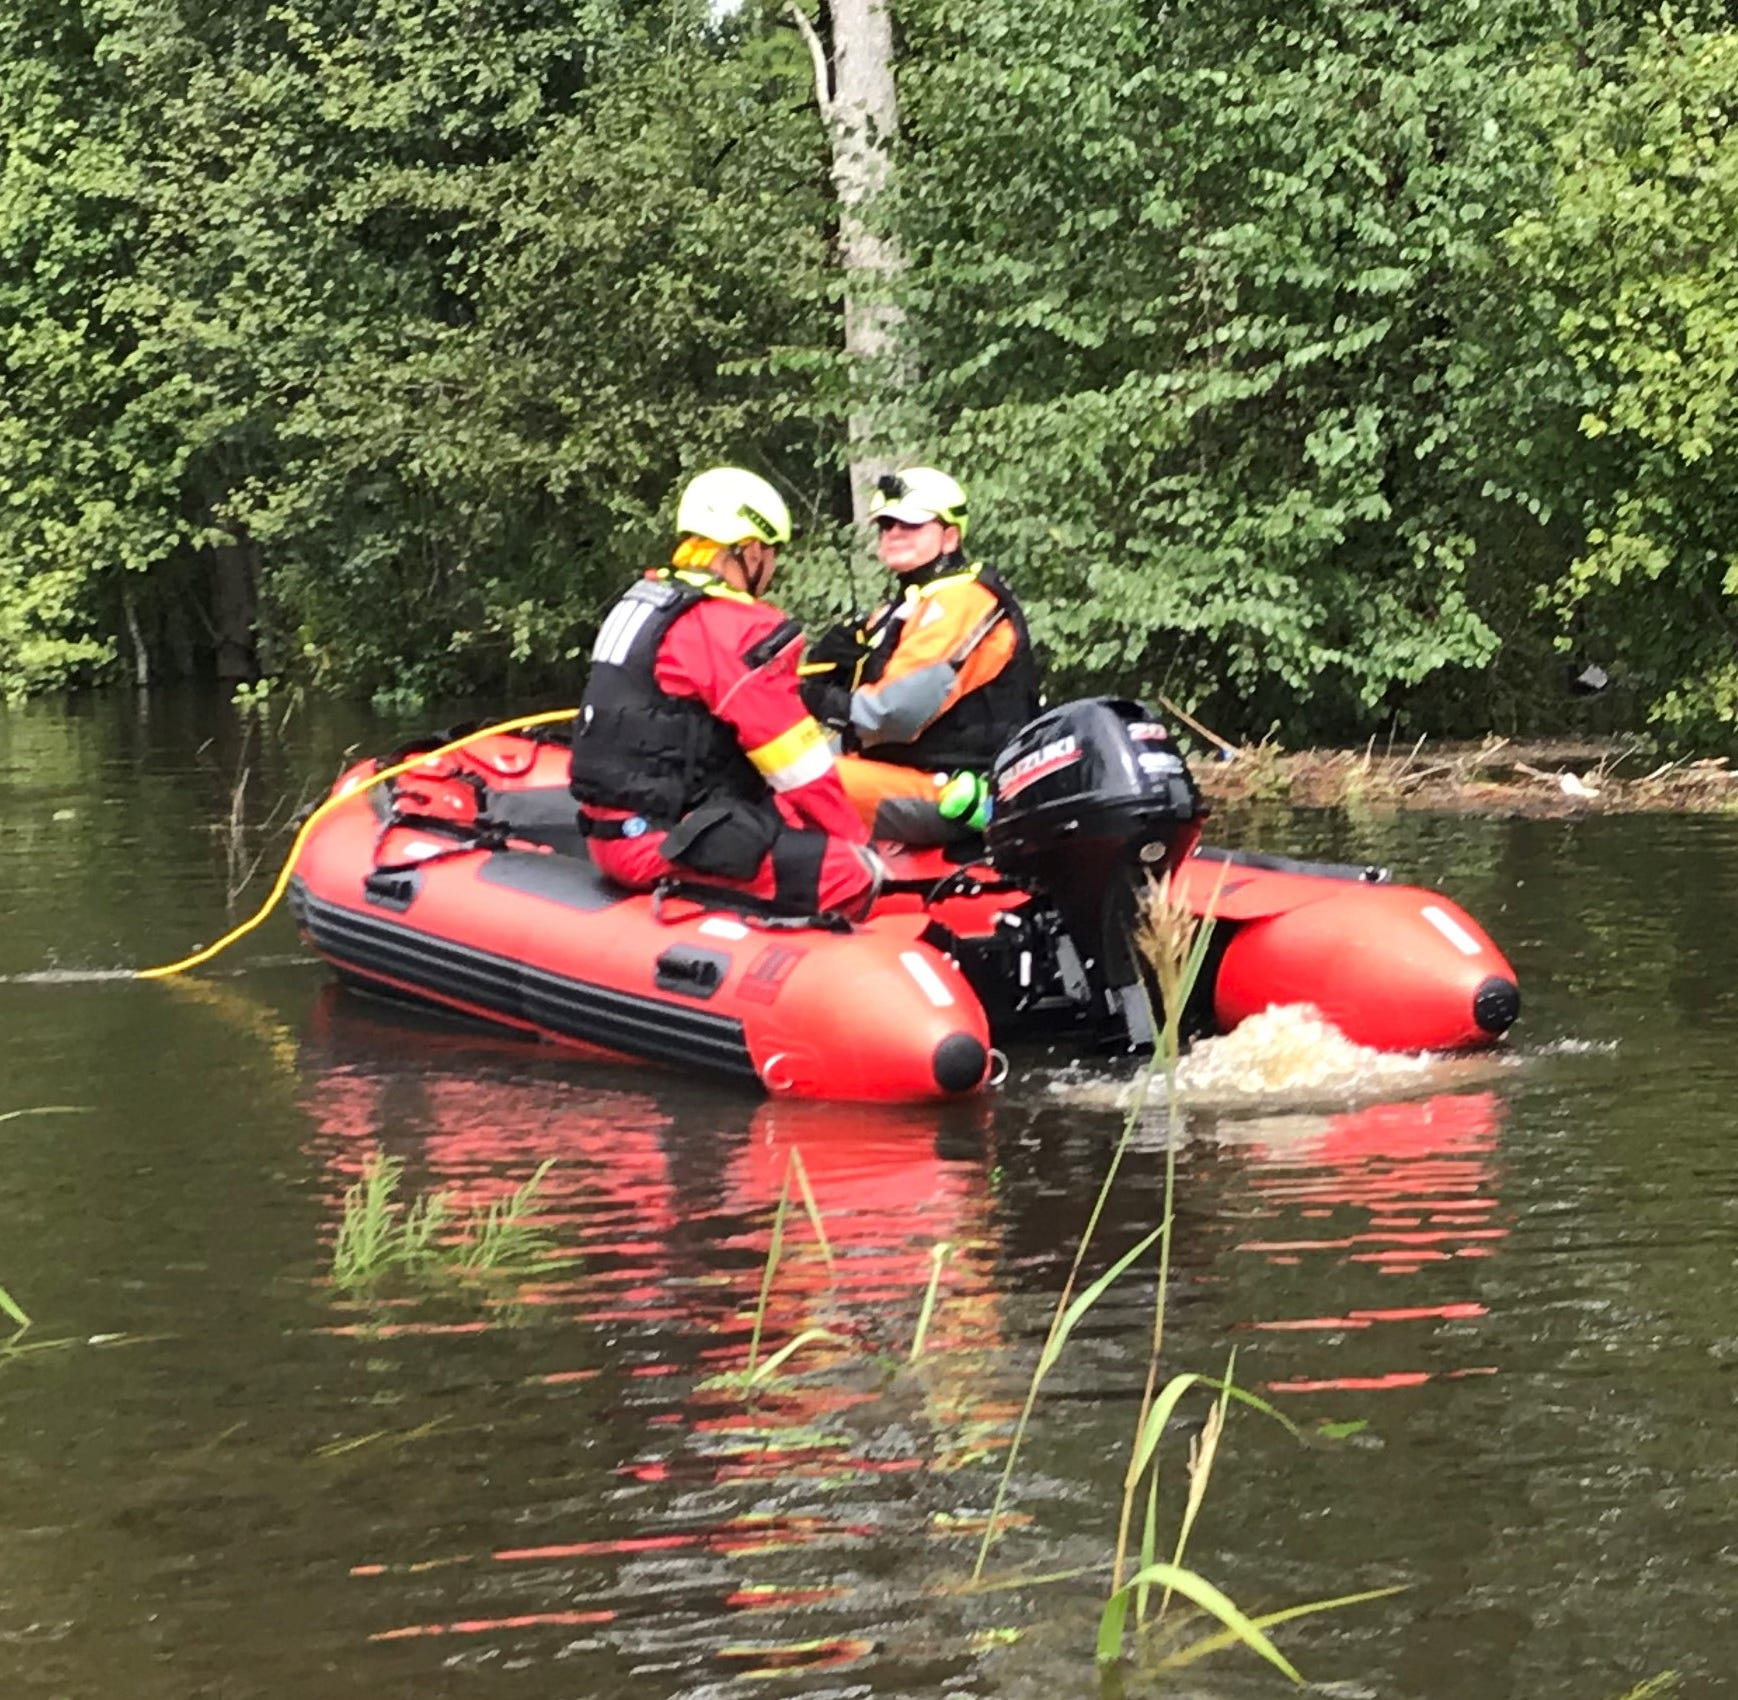 Hurricane heroes: Pickens County team praised for rescuing 162 during Pee Dee flash flood